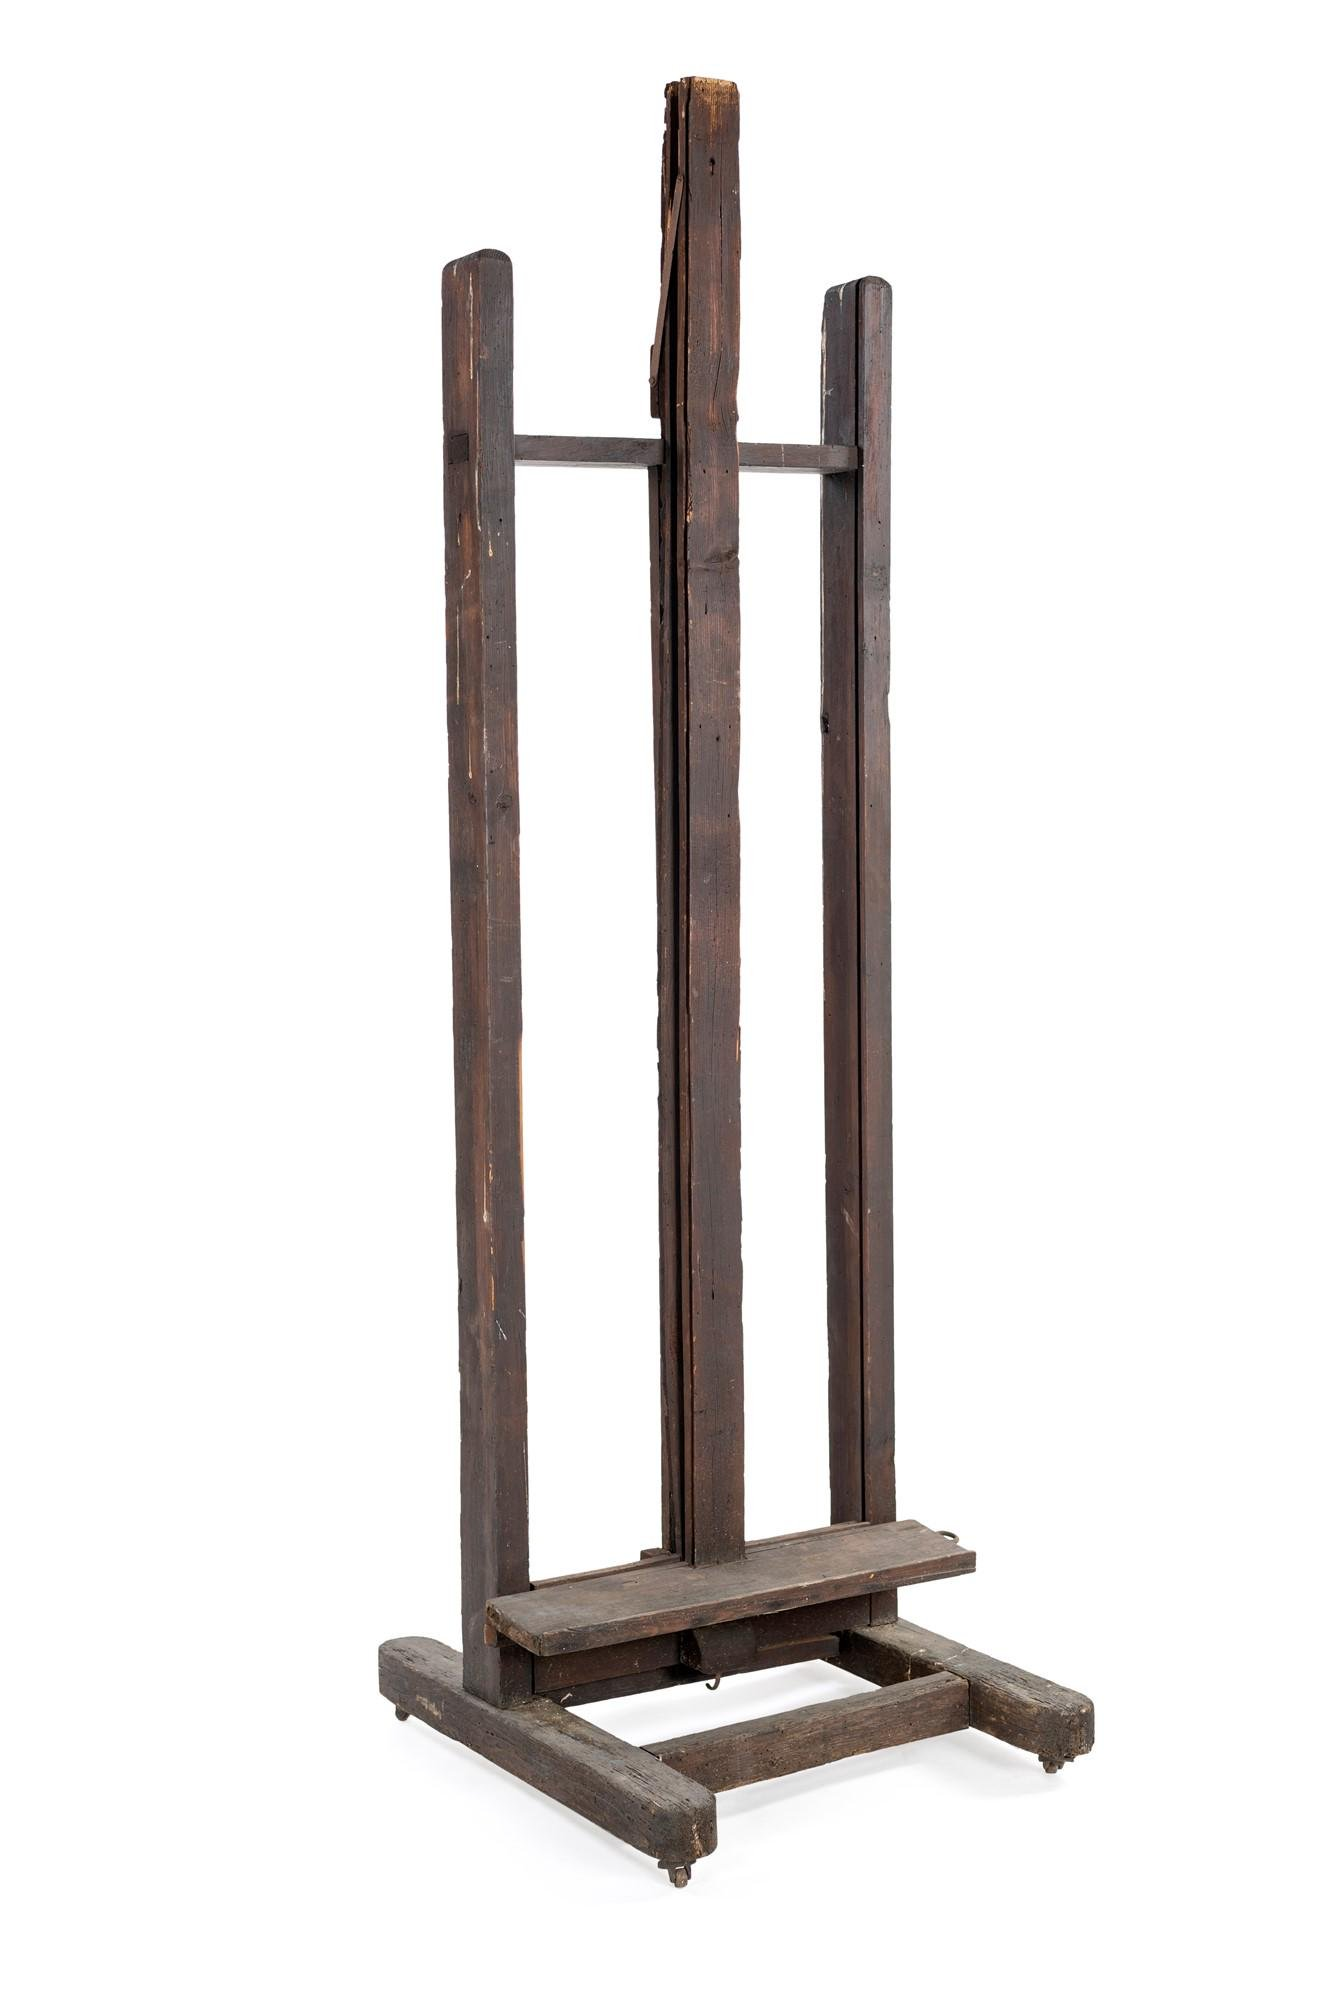 Wooden painter's easel from 19th century